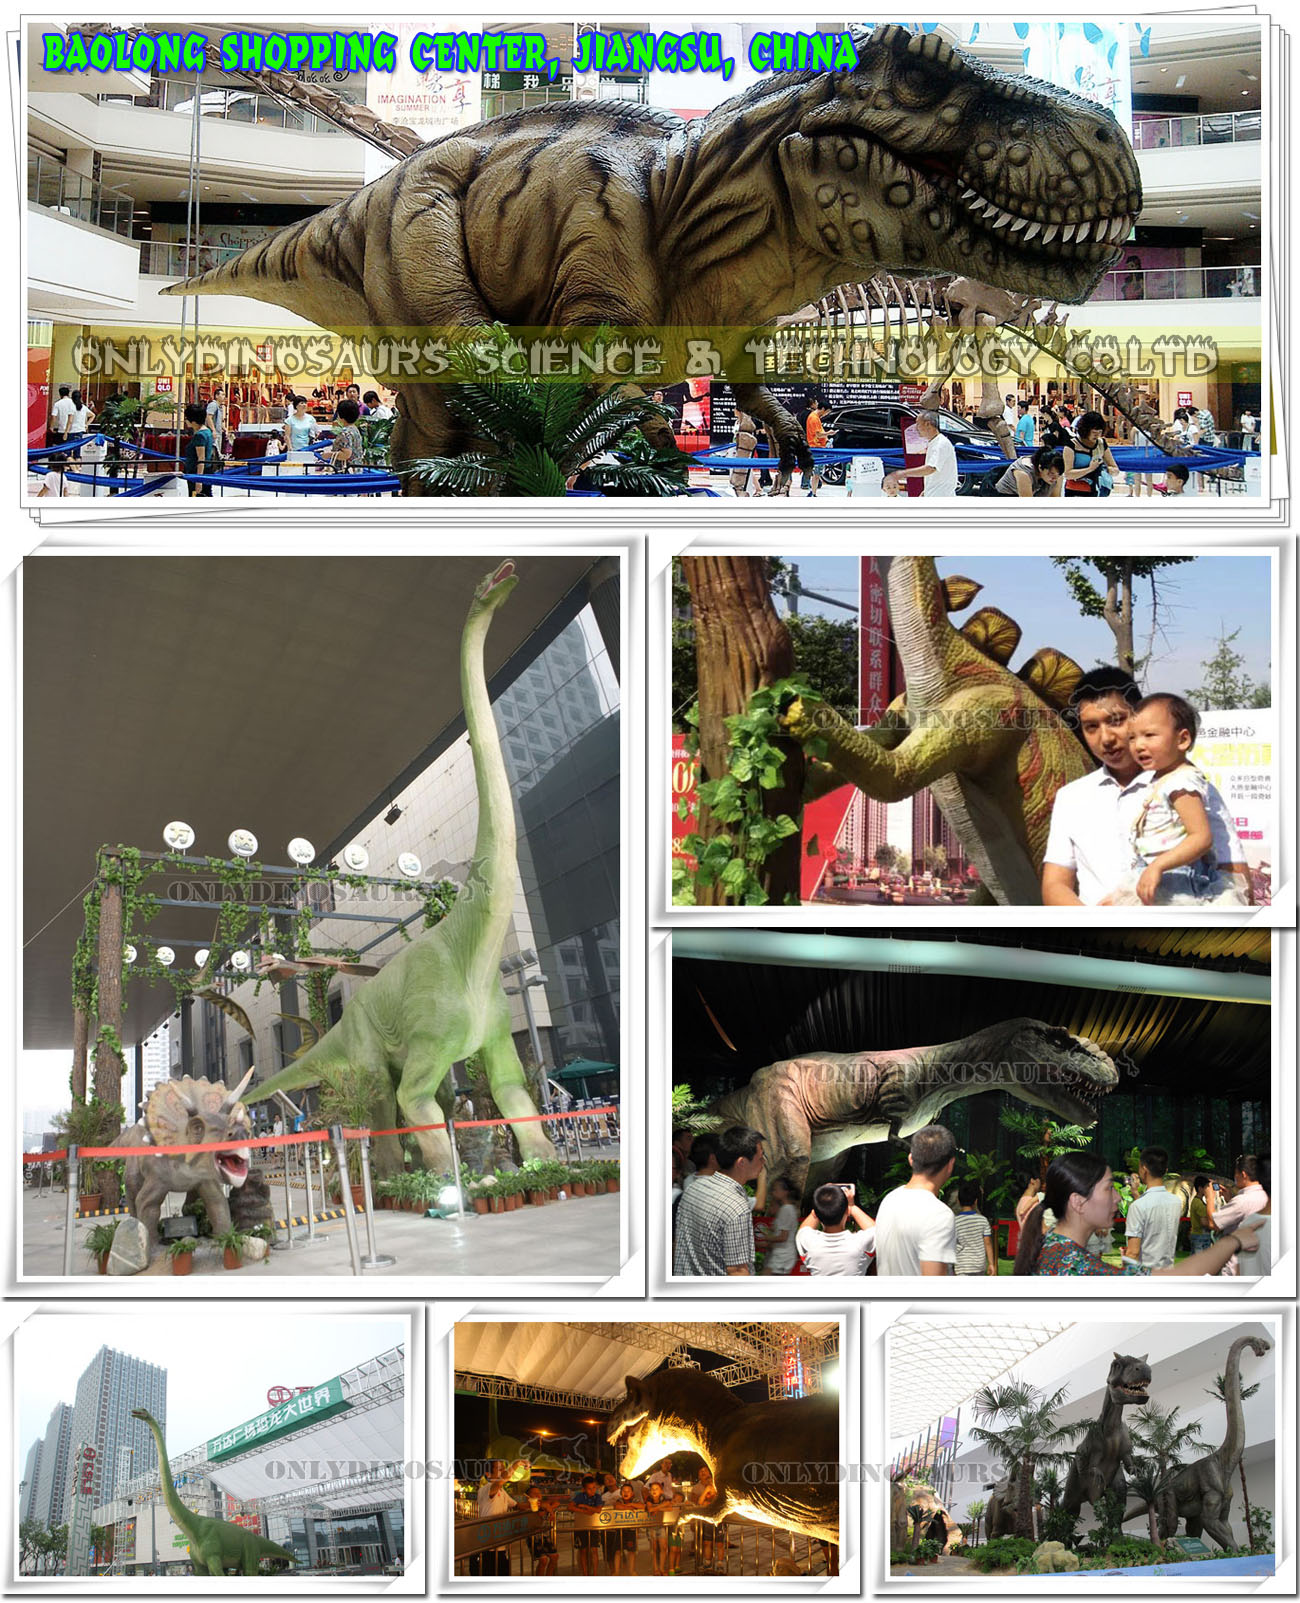 Dinosaurs Alive in Shopping Center